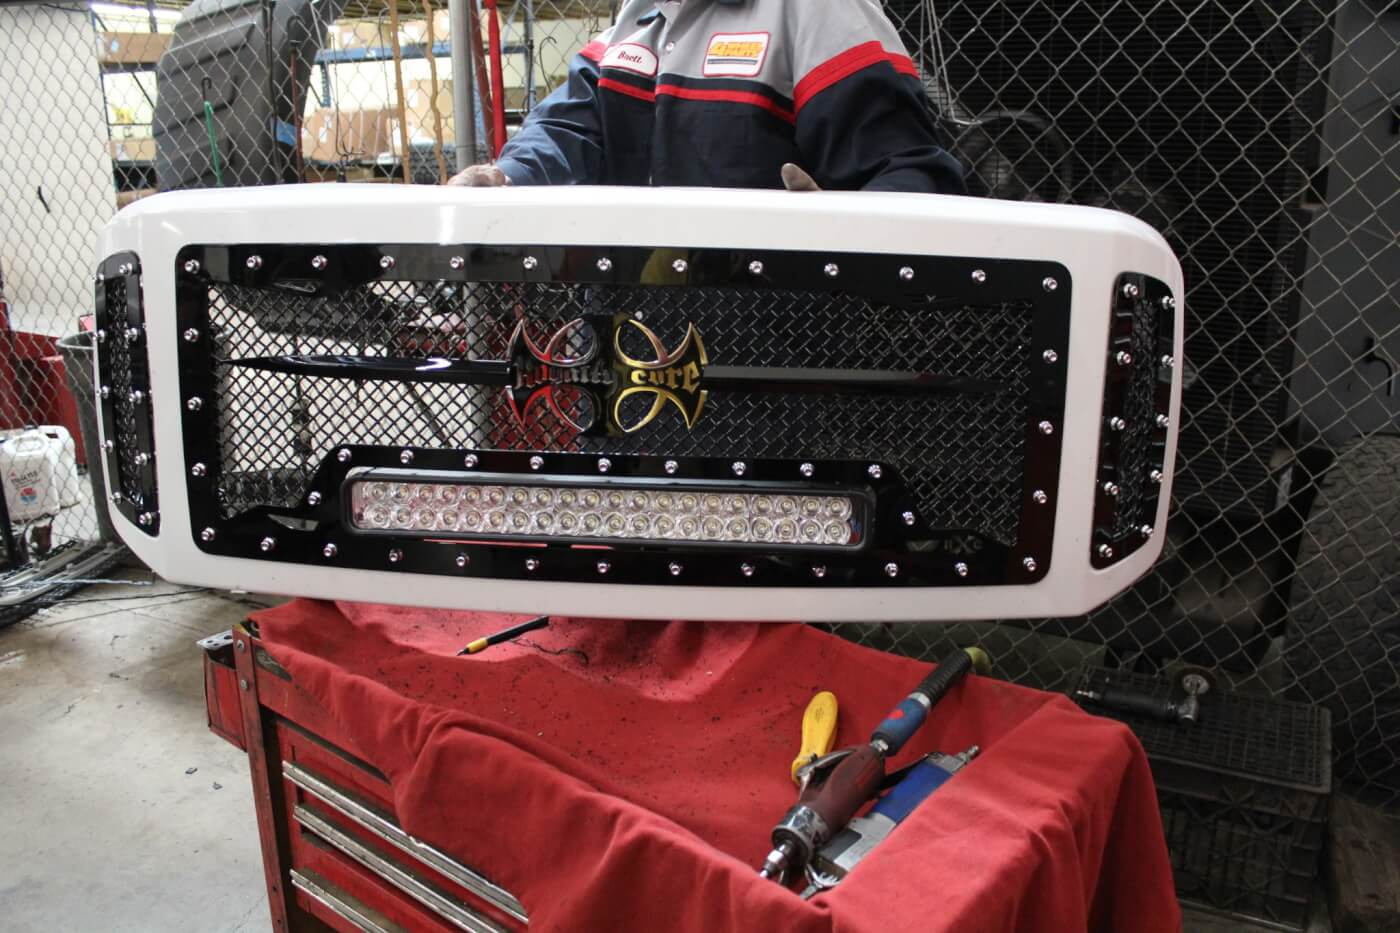 15. It took some work, but the finished insert is worth the effort. Not only does it look mean, but there's a 22-in. LED light bar built right into the grille!